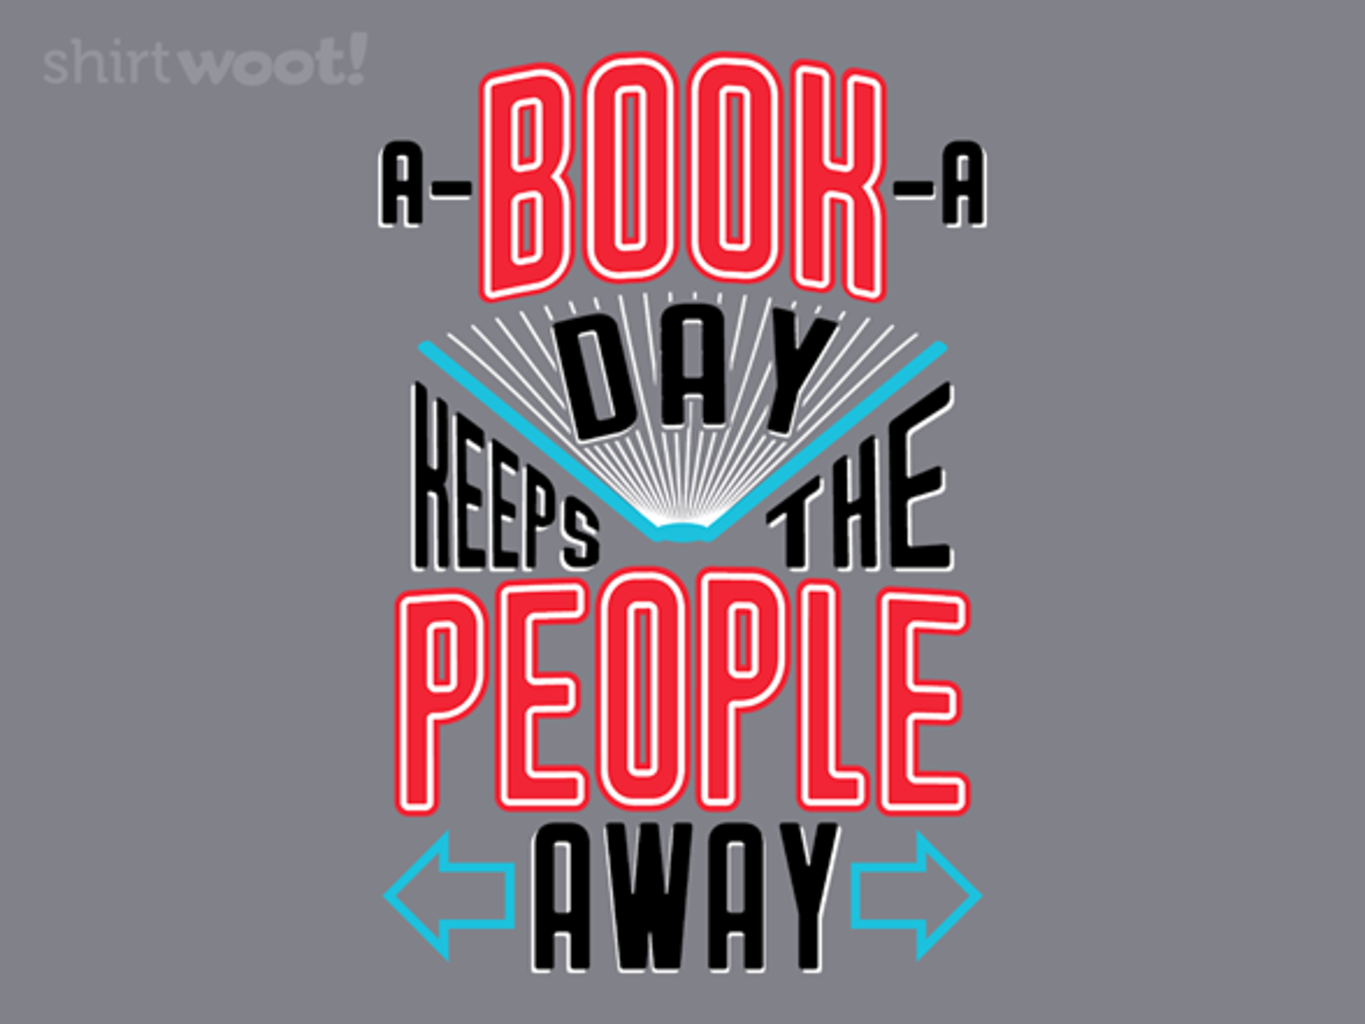 Woot!: A Book A Day